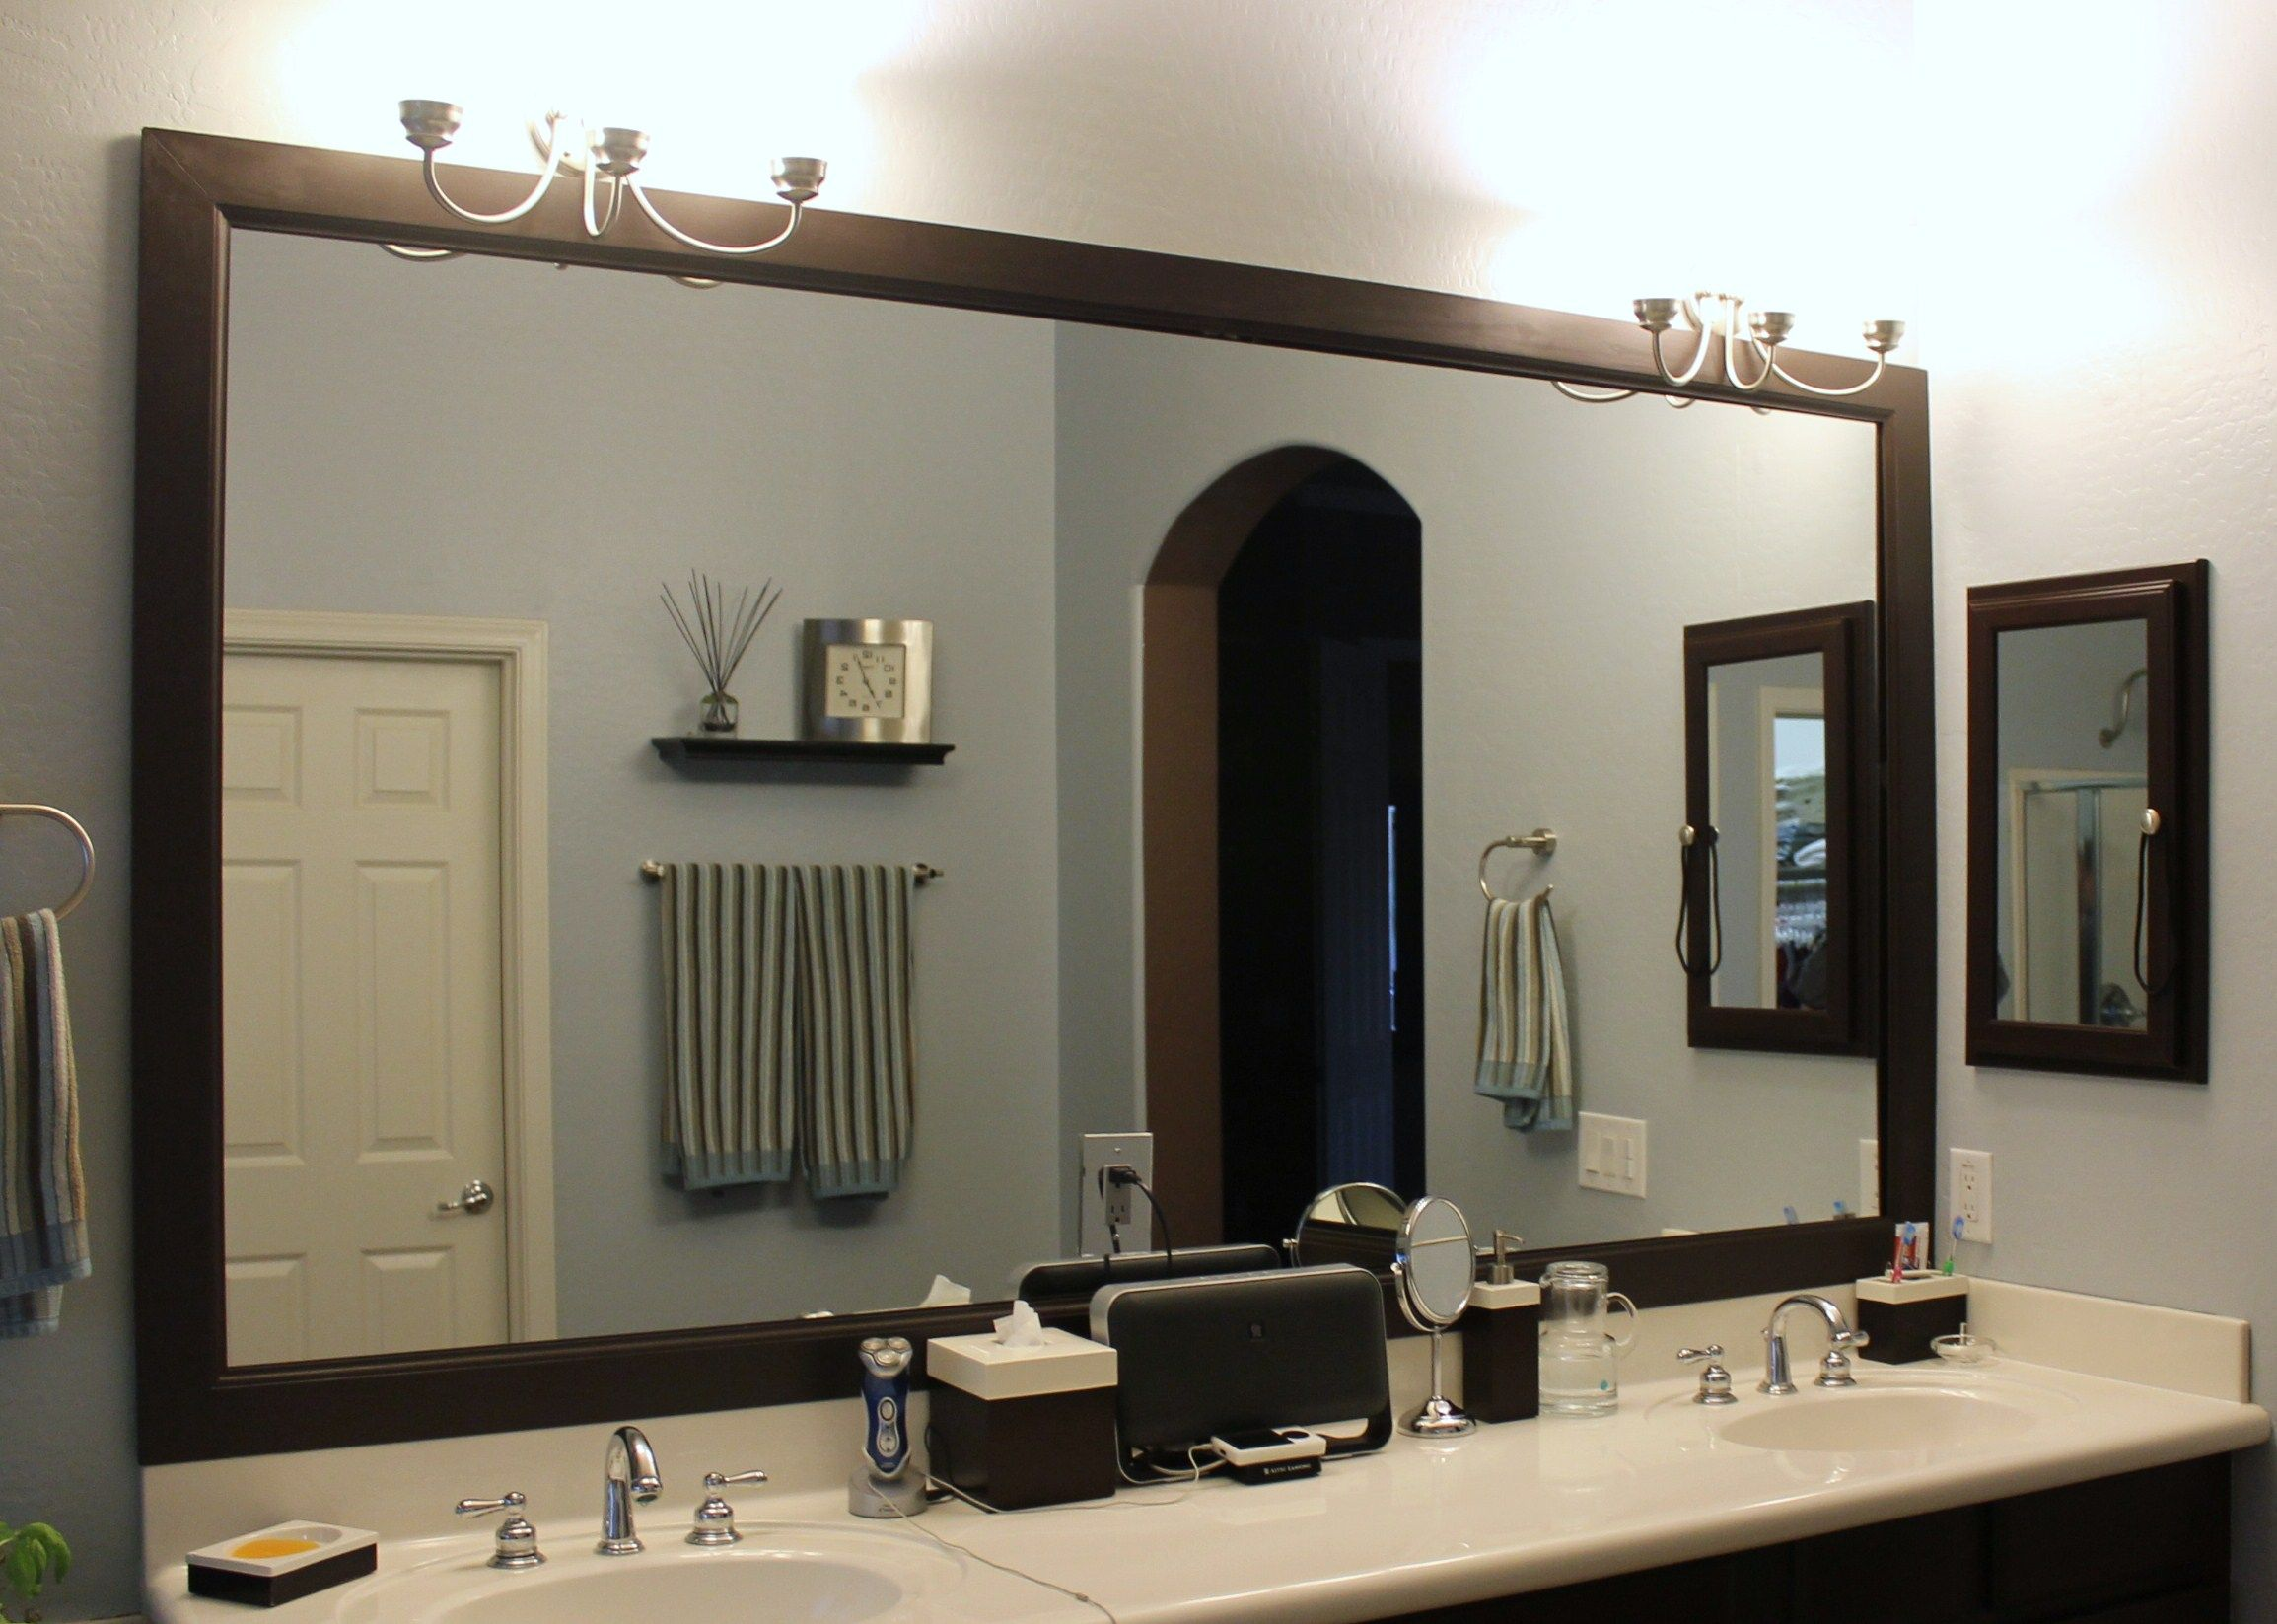 How To Frame A Large Bathroom Mirror Diy Bathroom Mirror Frame Bathroom Ideas Pinterest